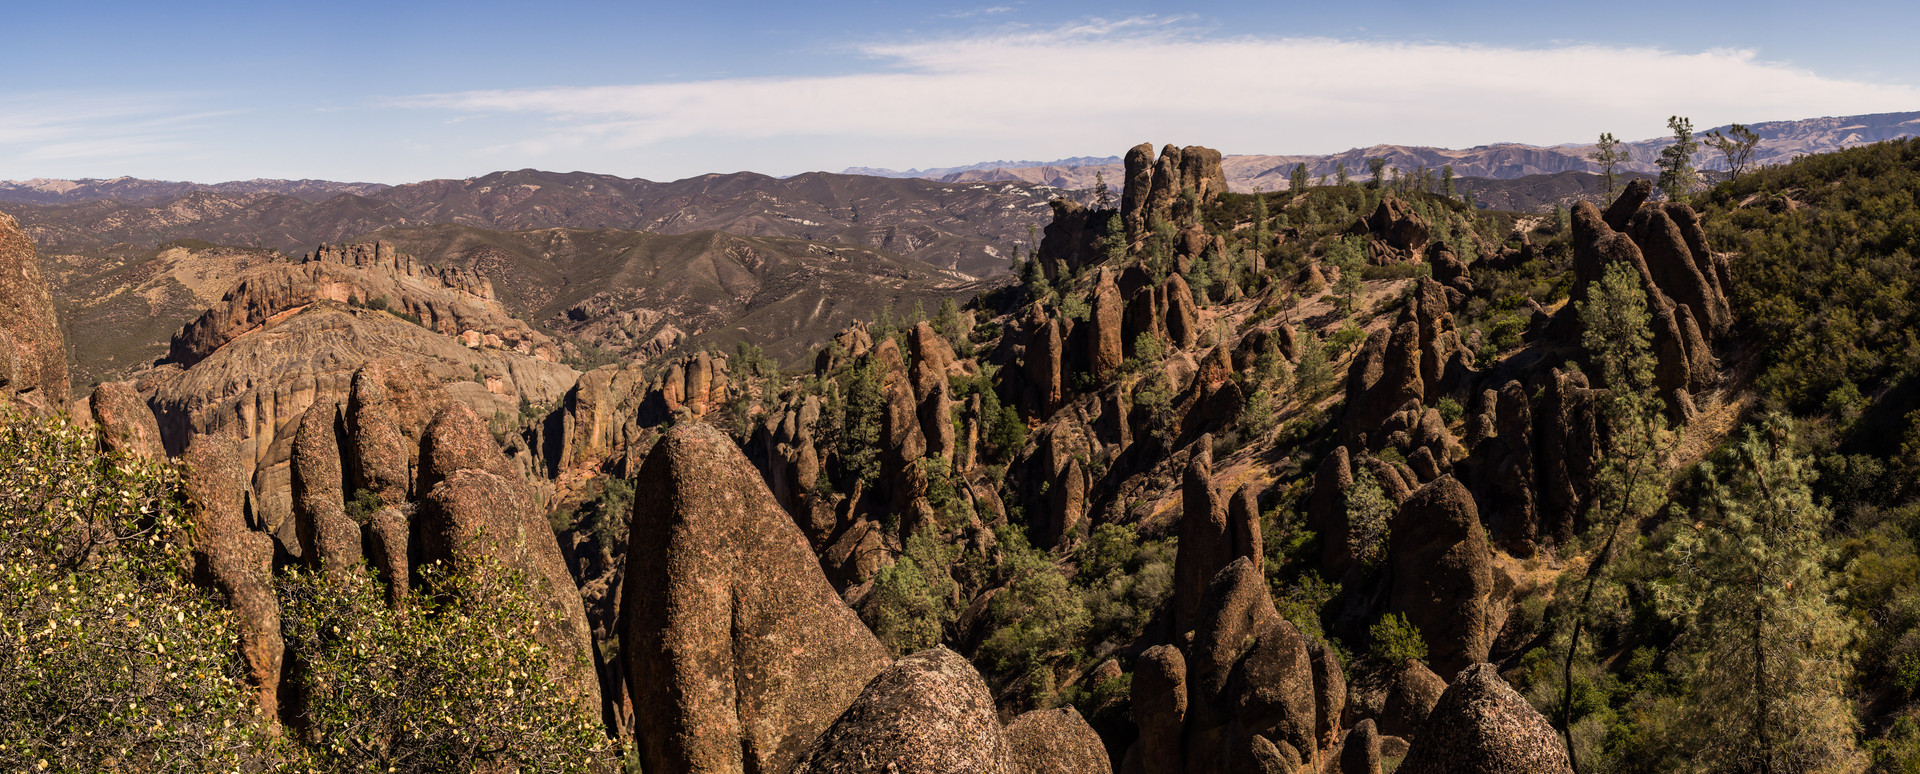 Panoramic image from the Pinnacles National Park in Central California